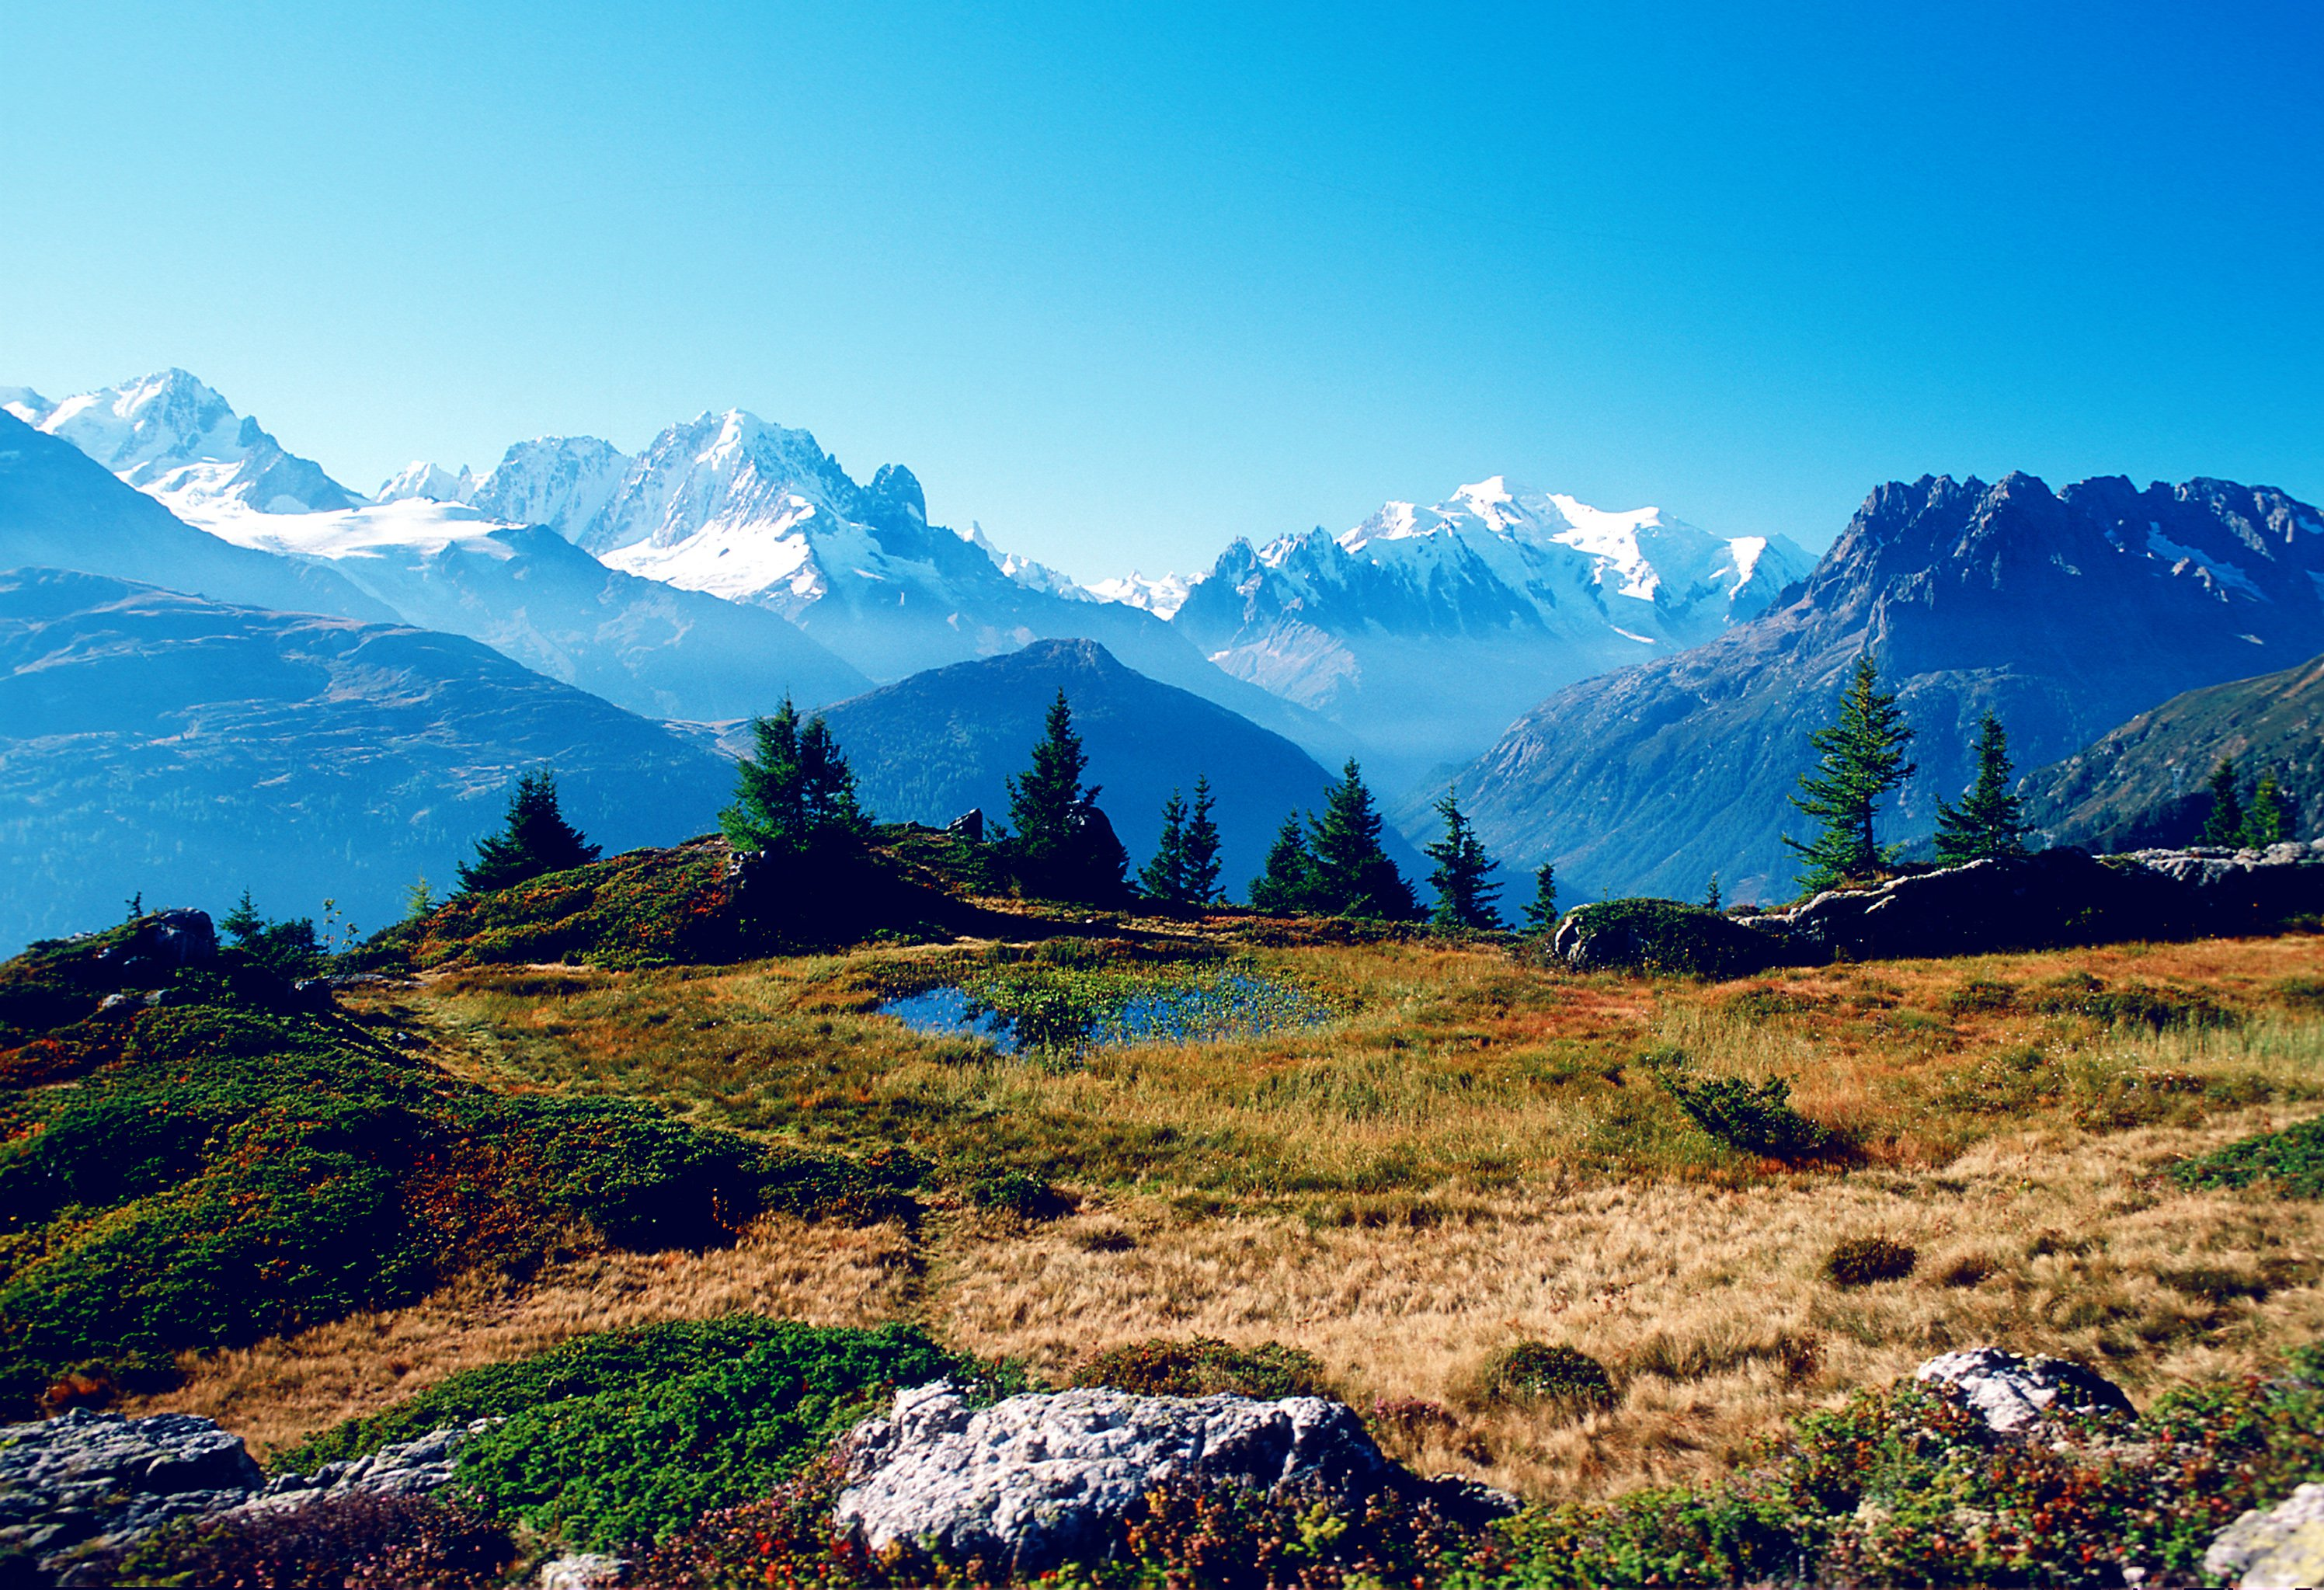 As a natural link between the Rhone plain and the Chamonix Valley, in the heart of the Mont-Blanc region, the Trient Valley is a region of genuine character and unforgettable beauty.